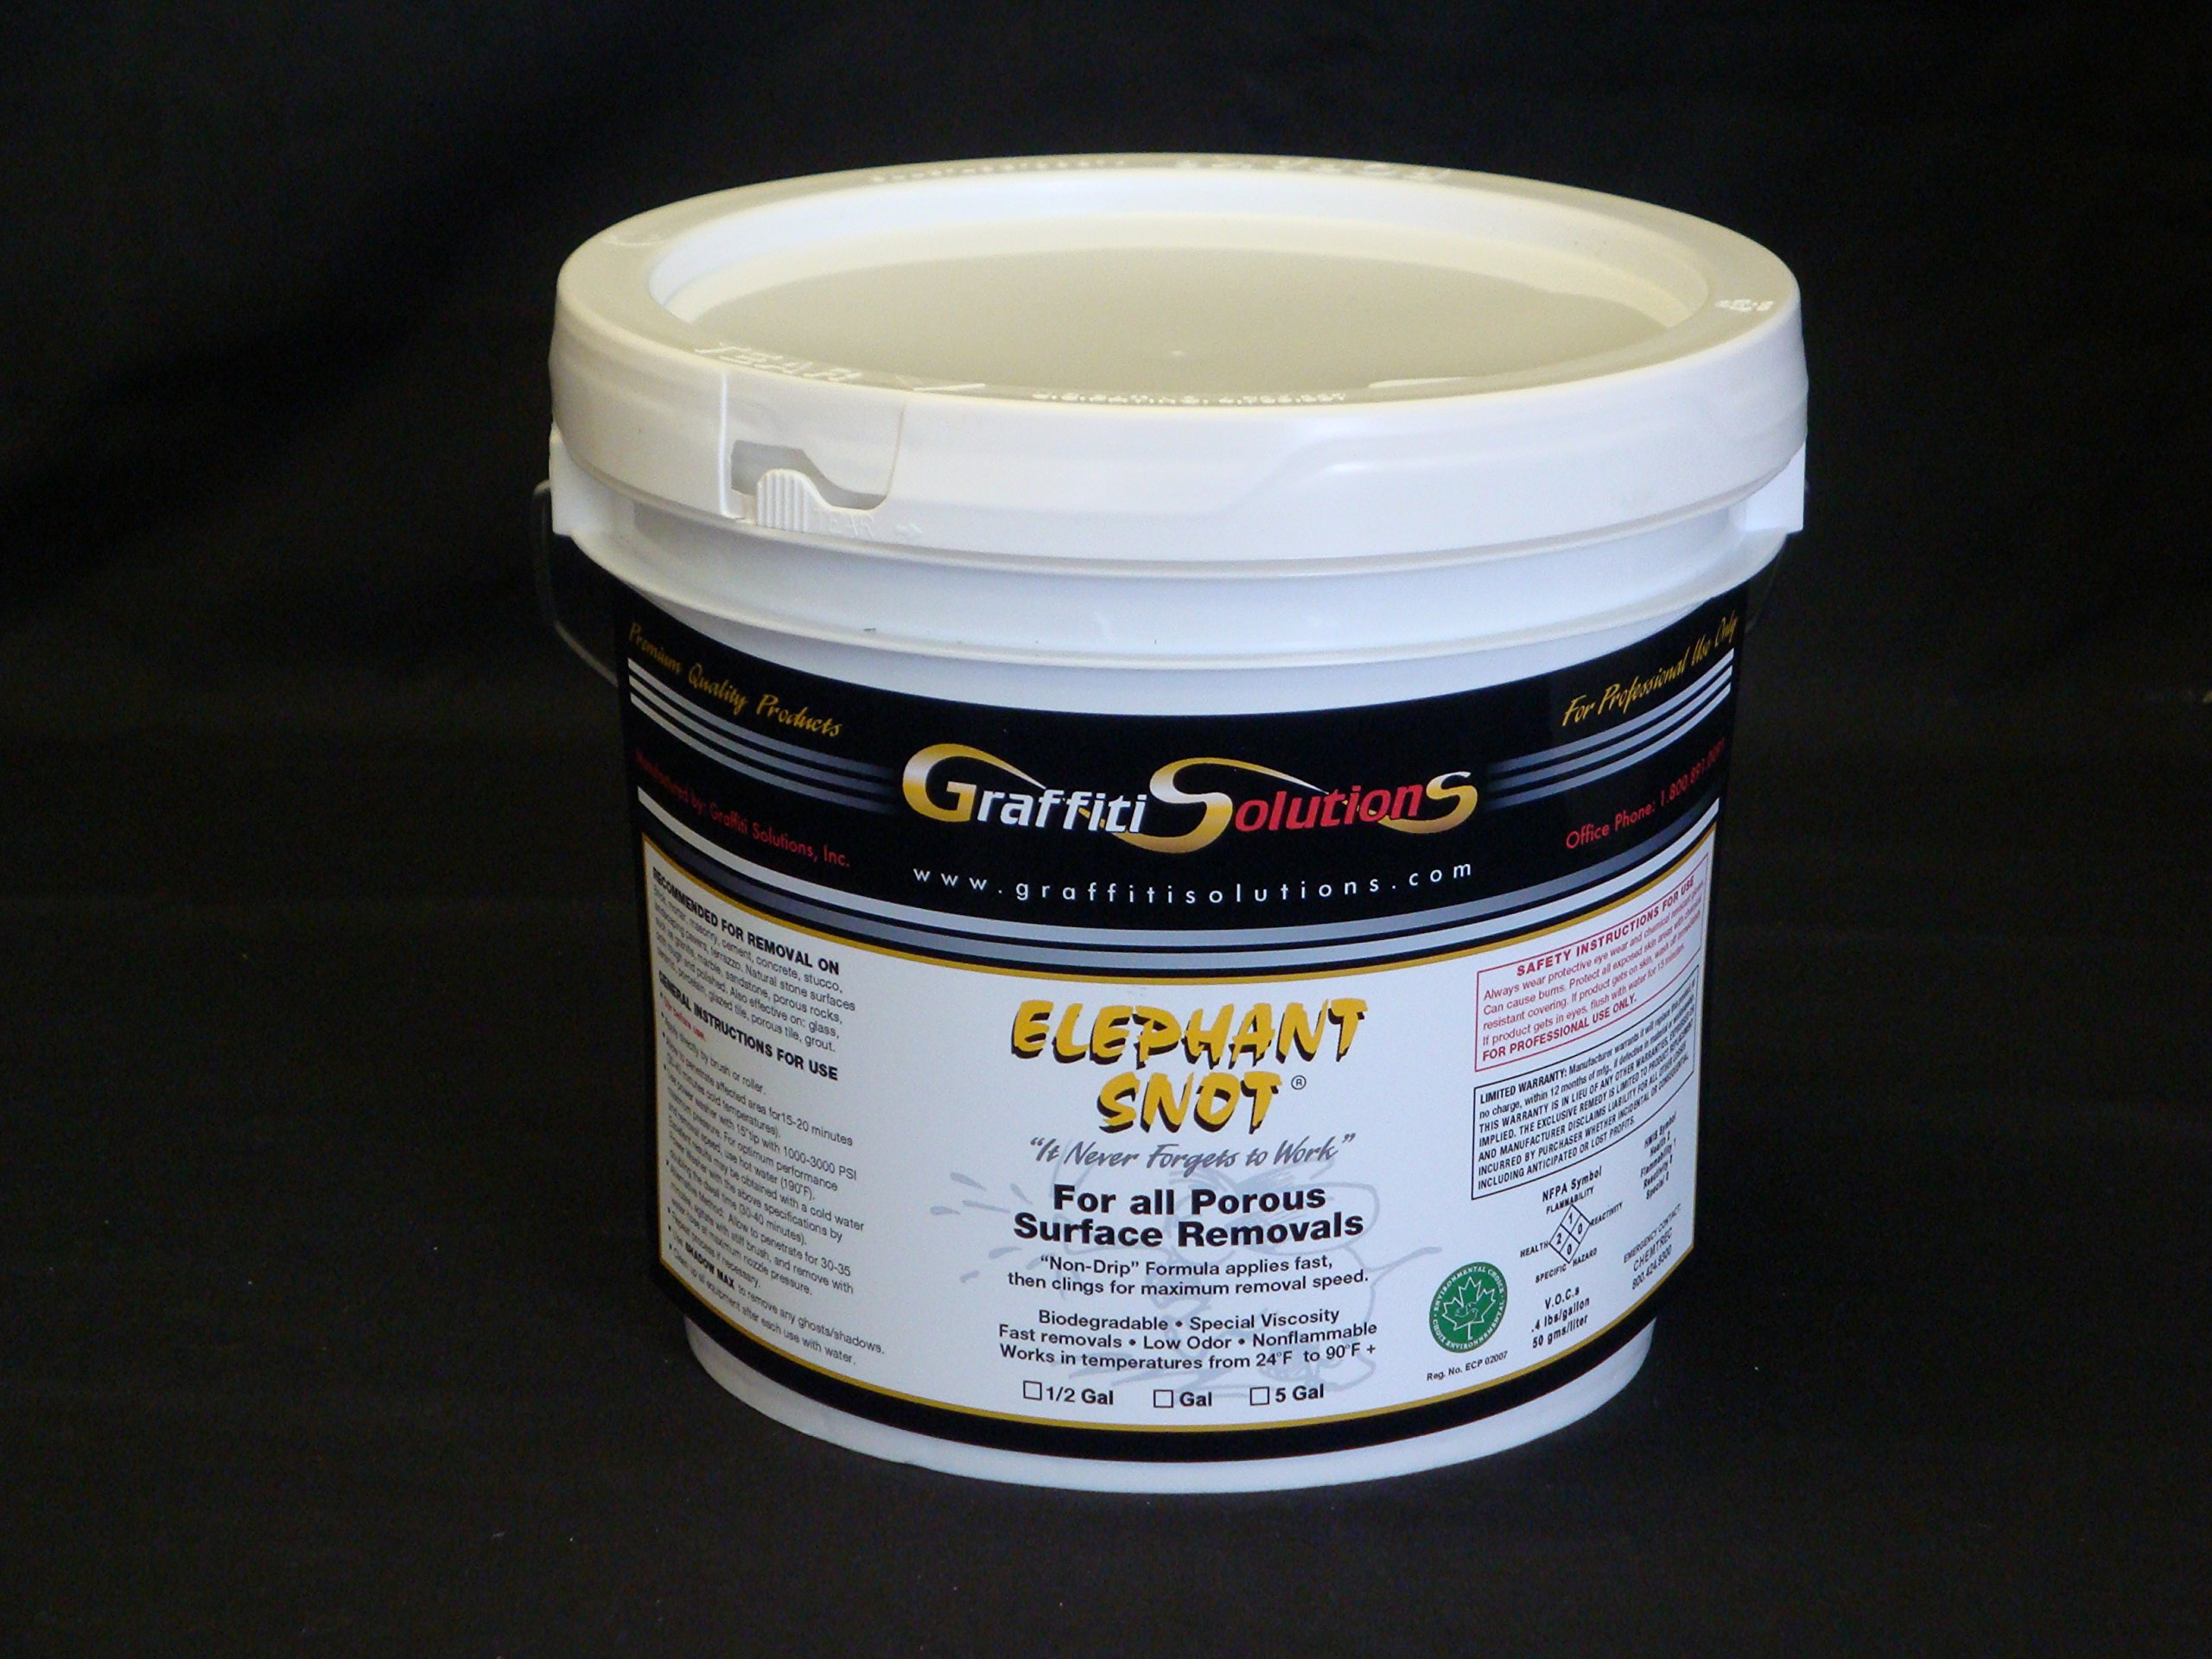 Elephant Snot Graffiti Remover 1 Gal Used By Professionals on Porous Surfaces for Exceptional Graffiti Removal of spray paint, marking pens, difficult to remove 2-part paint, epoxy, urethane and more